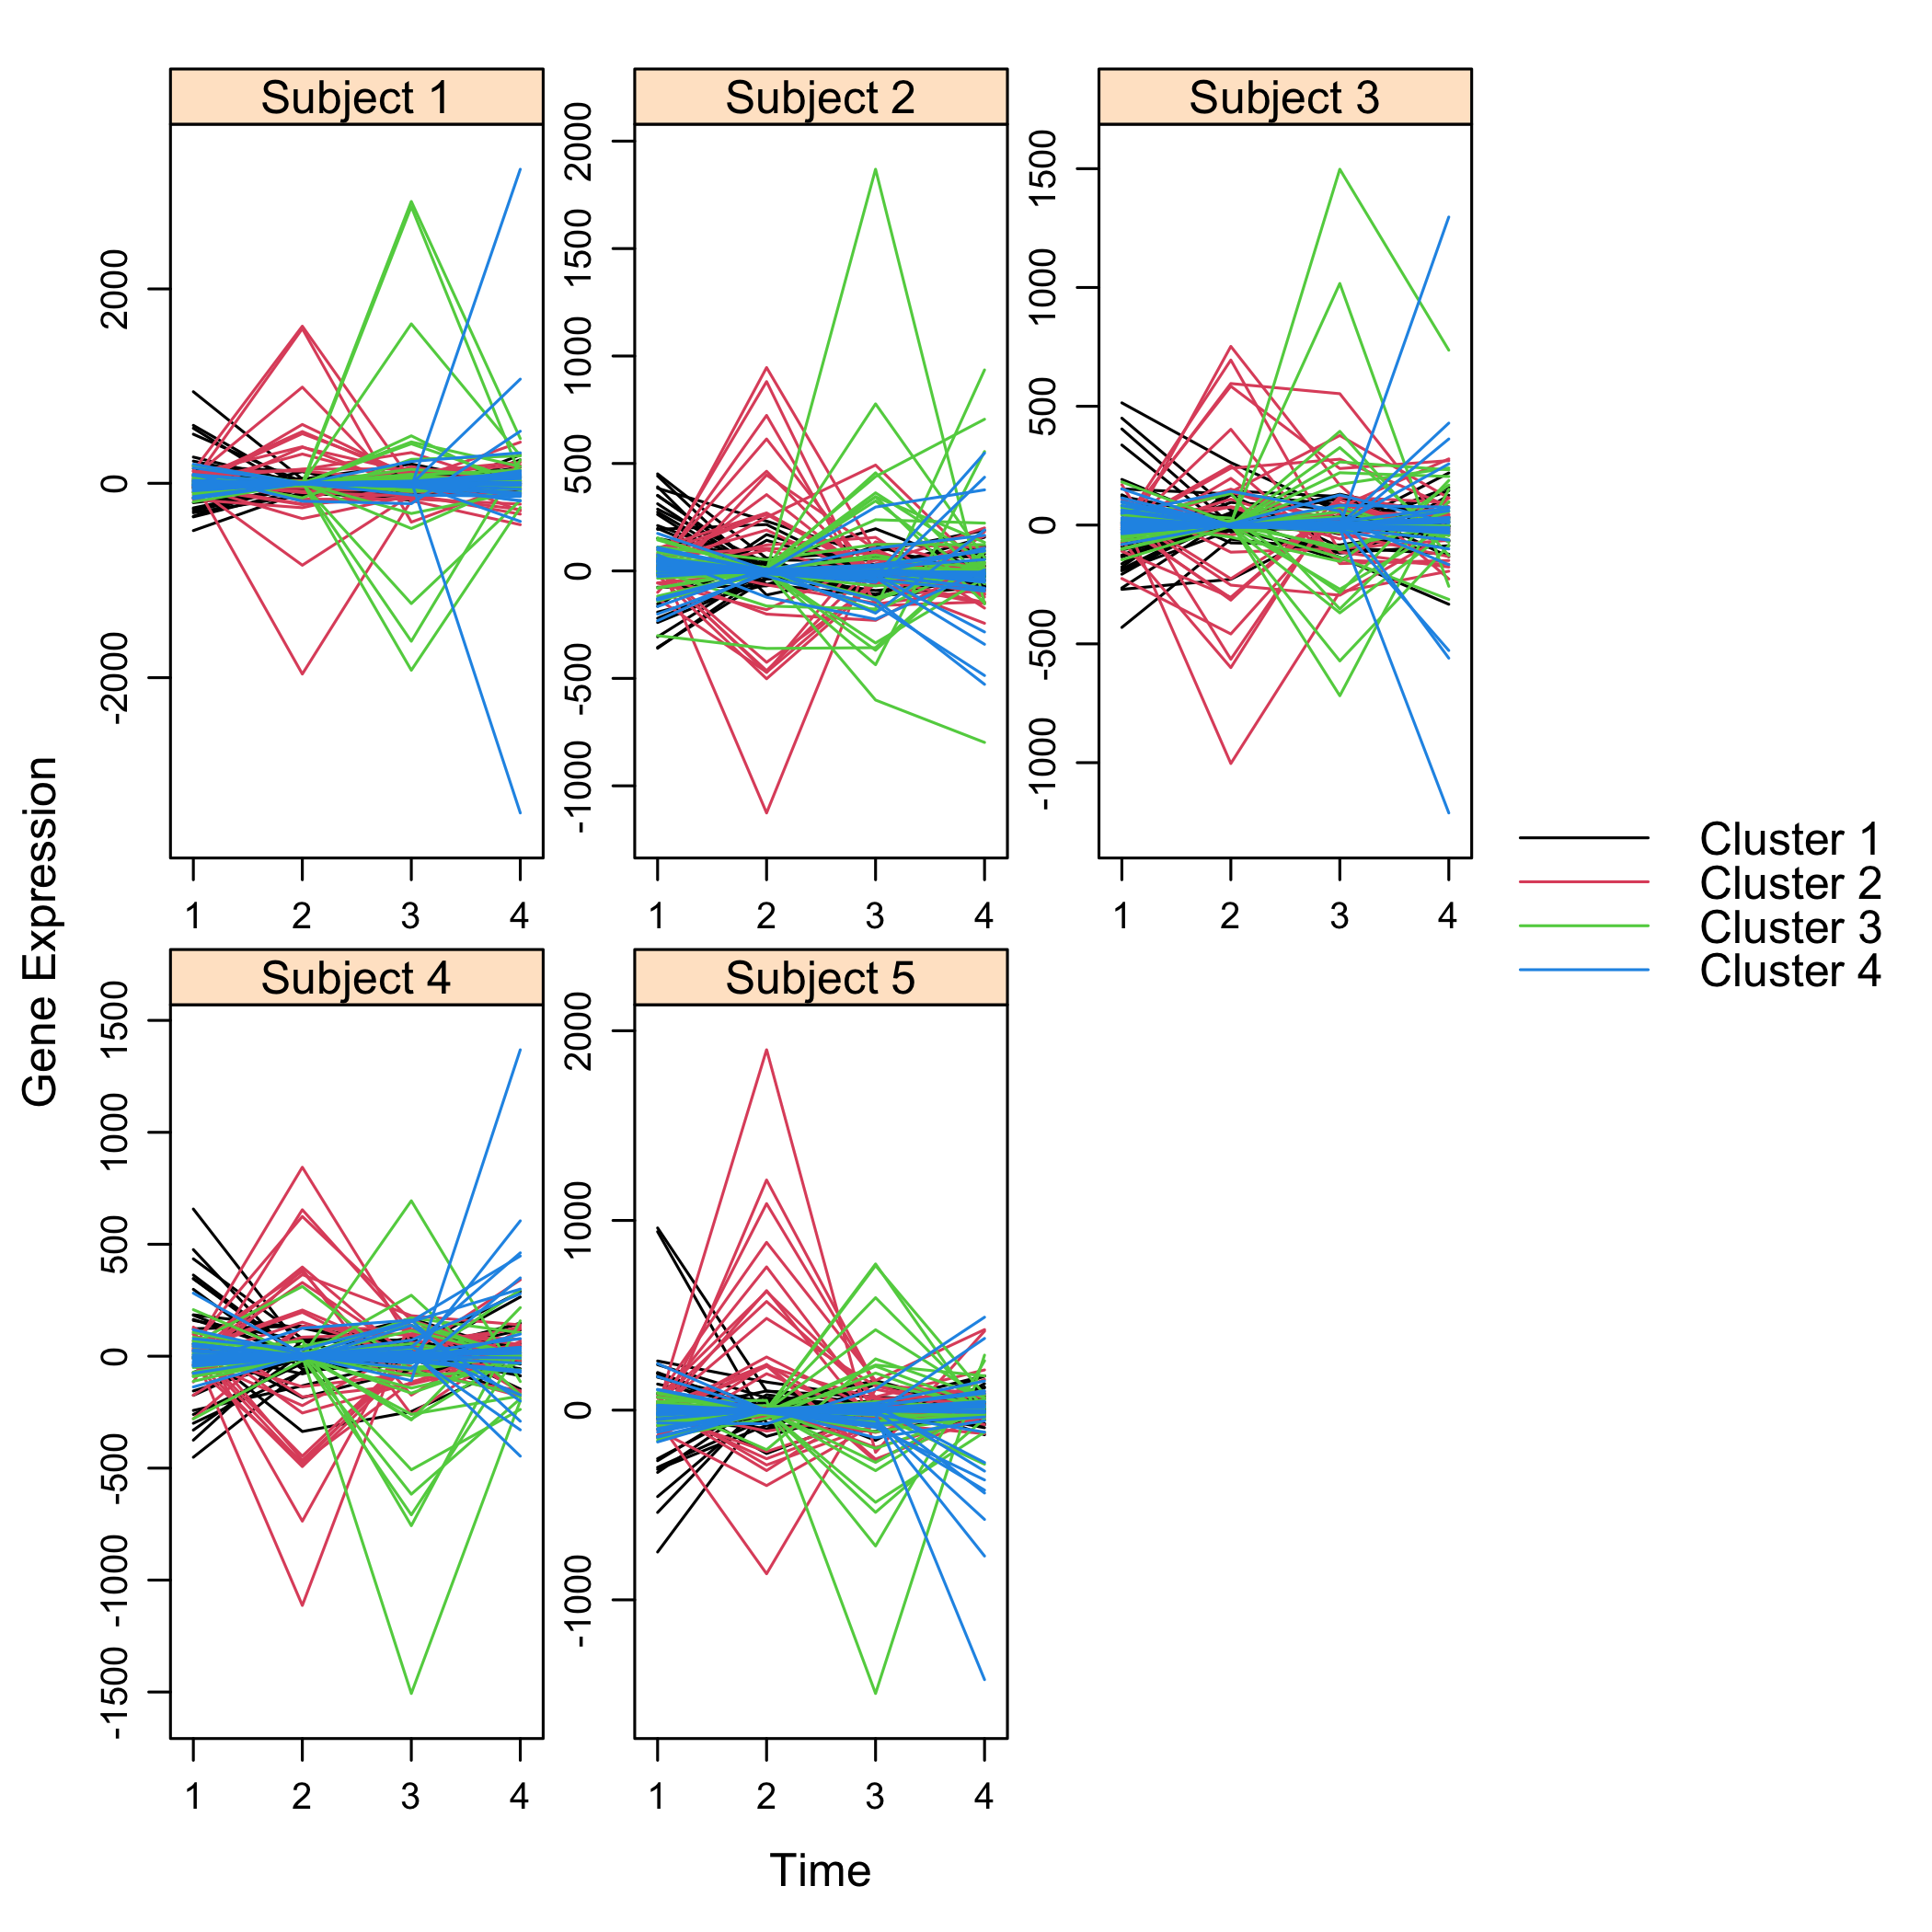 Plot of simulated data for cascade networks featuring cluster membership.